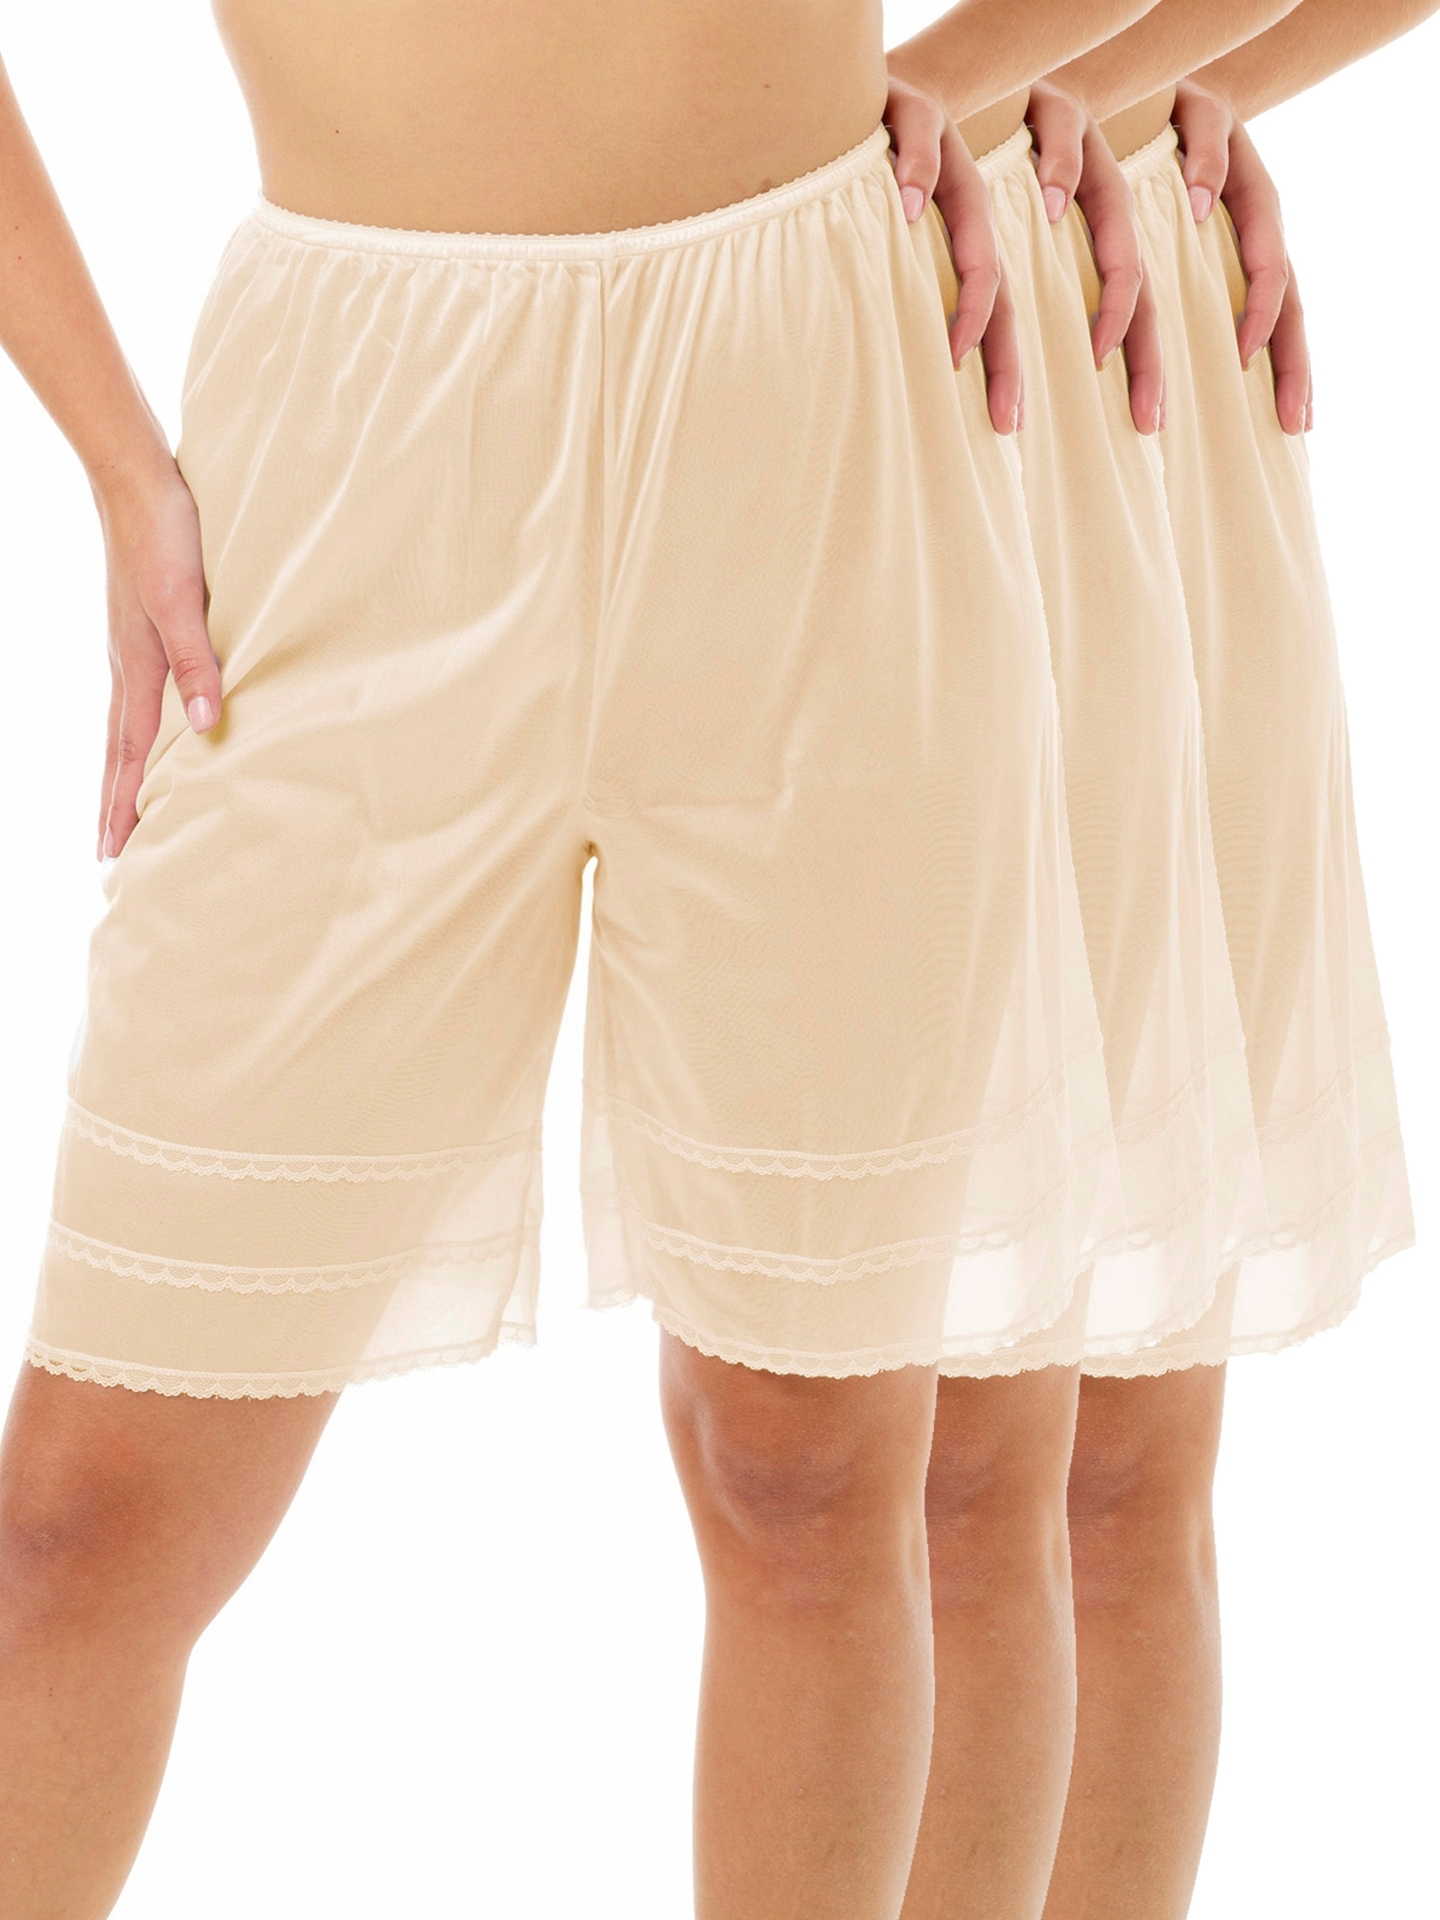 Picture of Snip-A-Length Pettipants 3-Pack